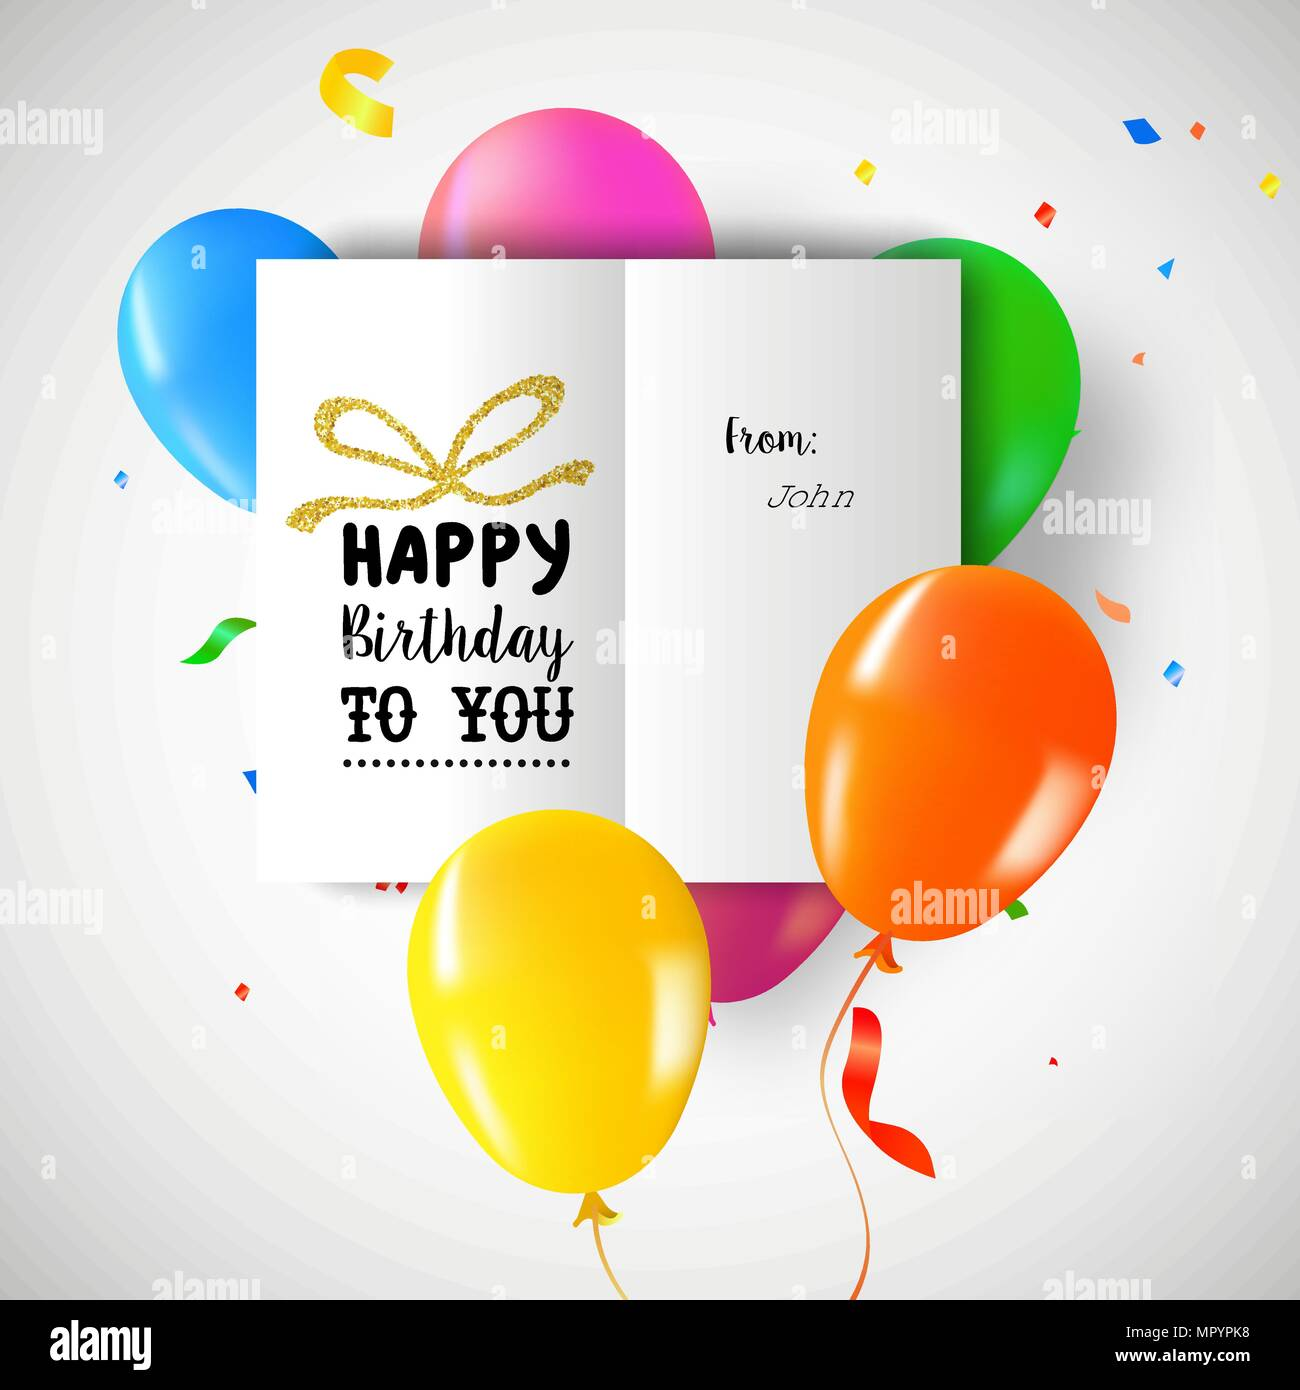 Happy birthday greeting card on colorful party balloons and confetti happy birthday greeting card on colorful party balloons and confetti background for special day eps10 vector m4hsunfo